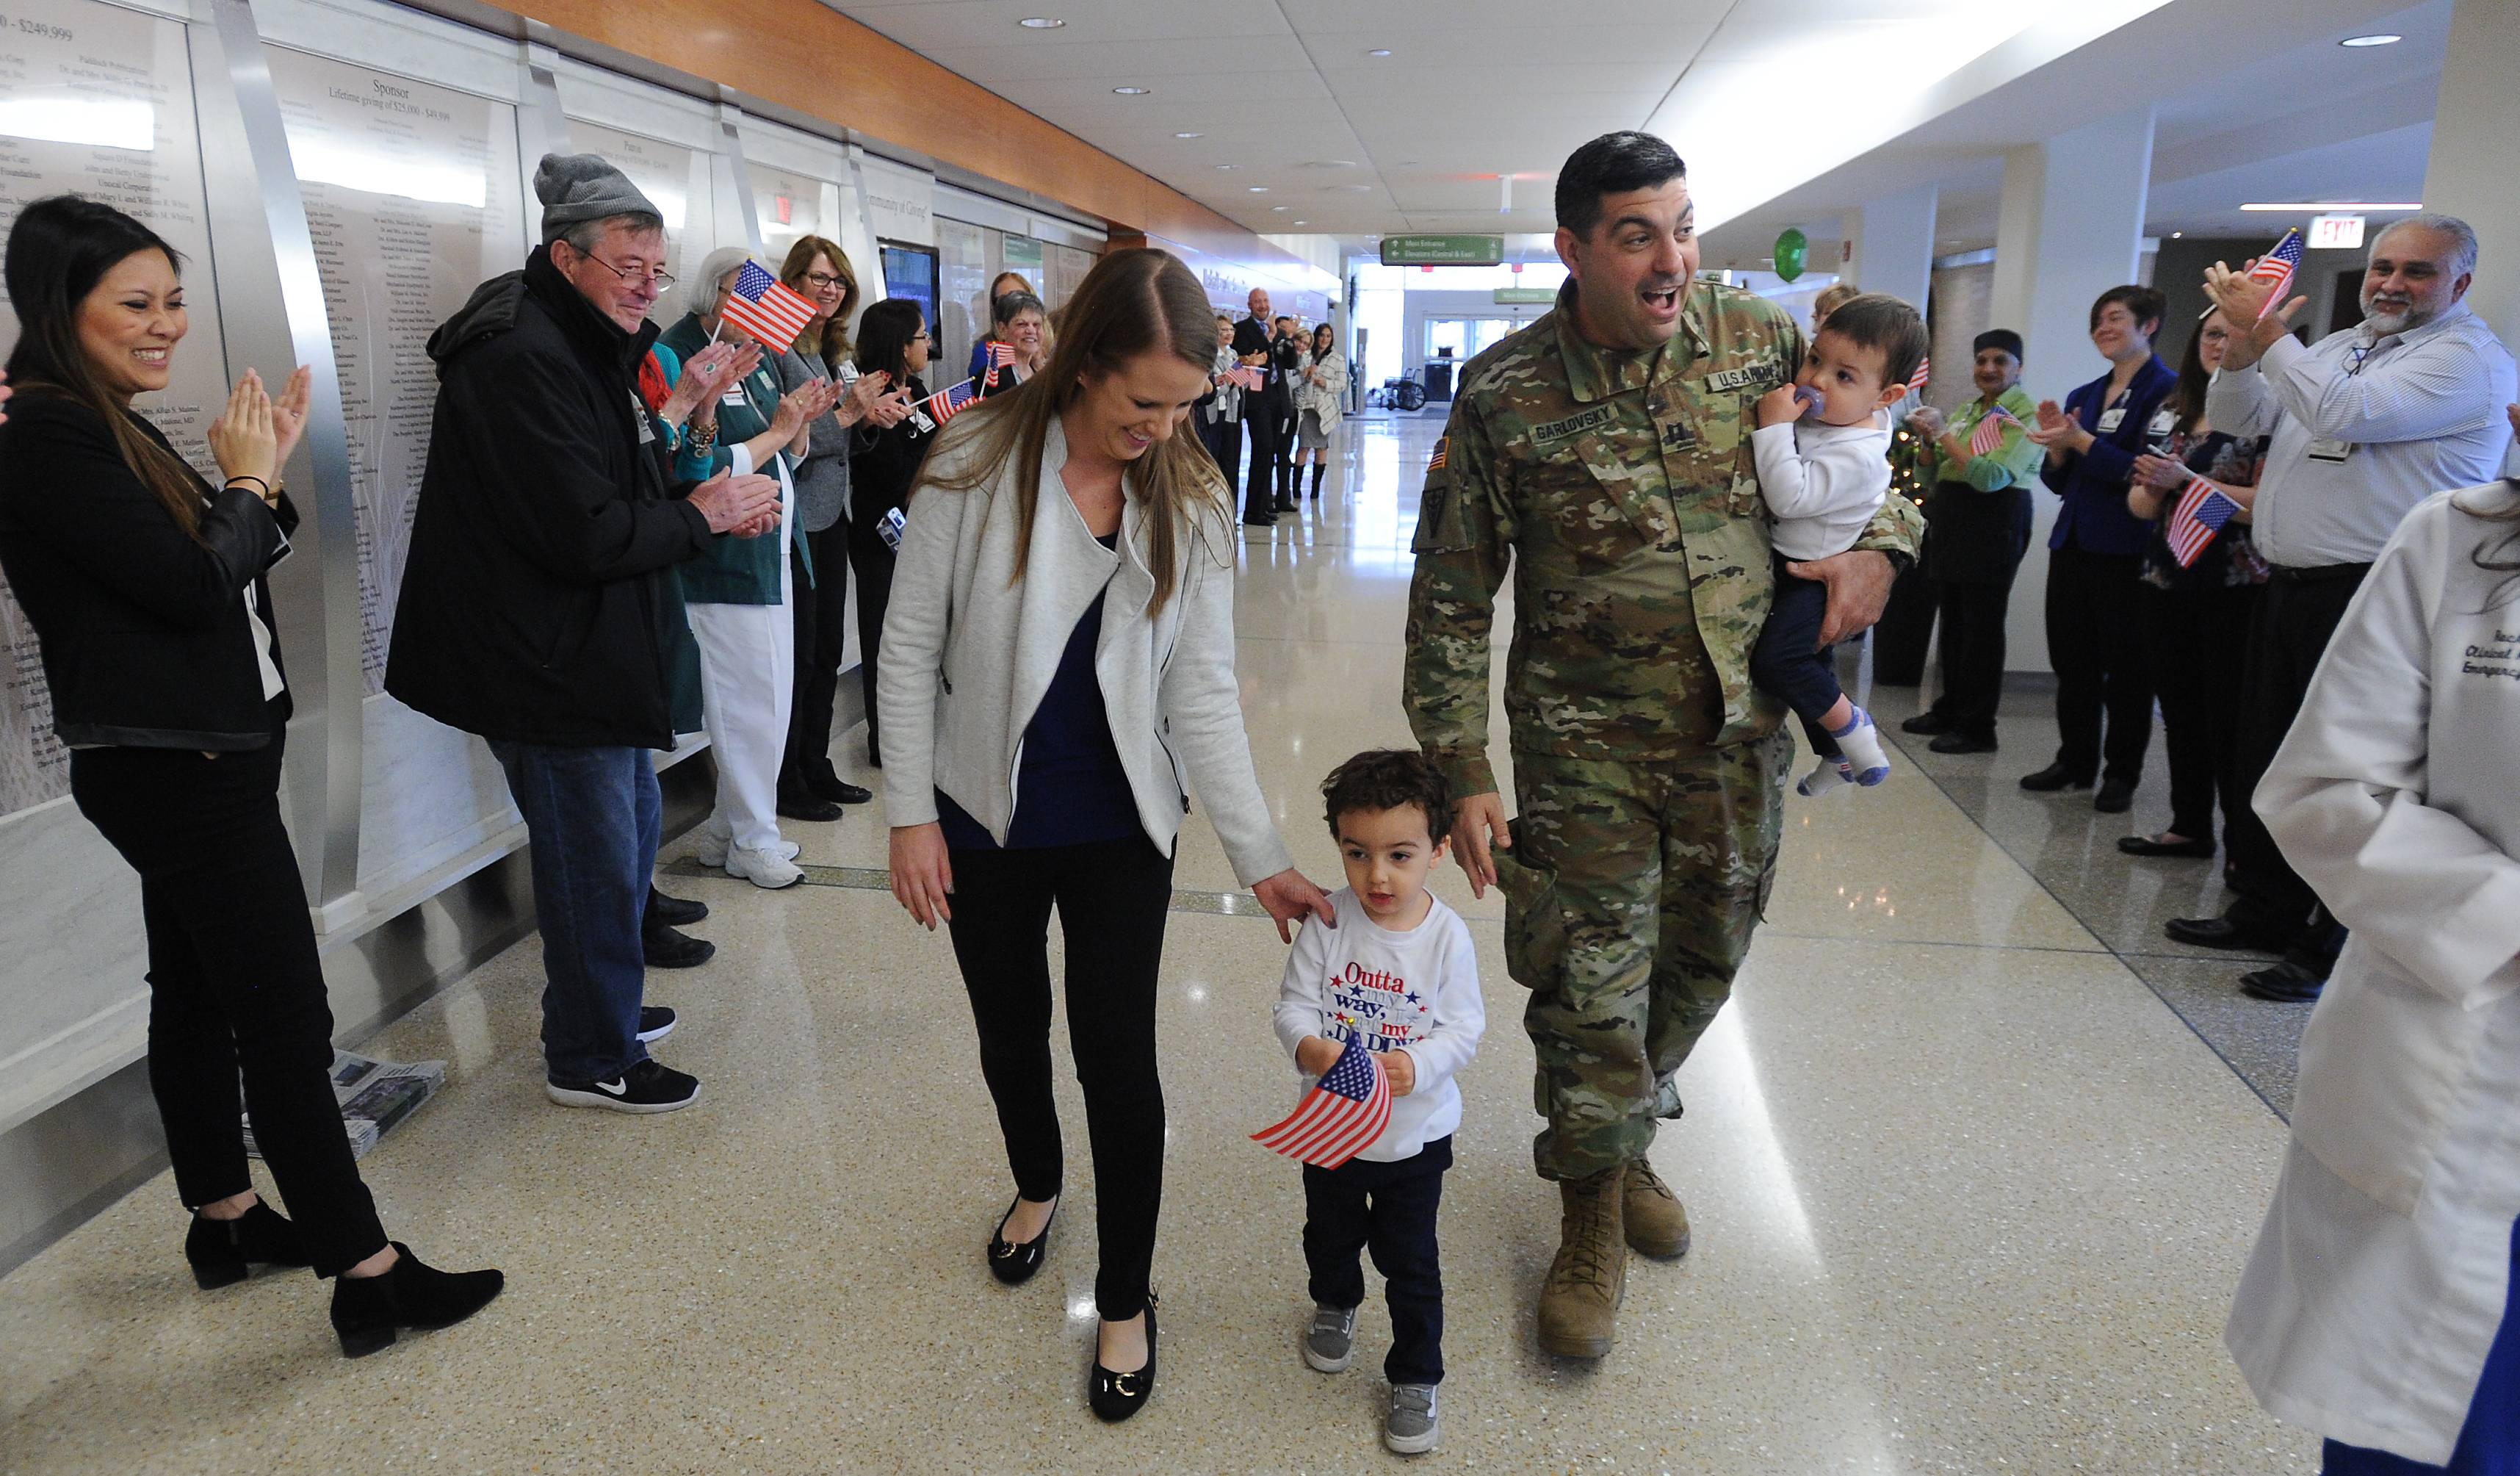 Northwest Community Hospital employees line the main hallway for the return of Dr. Jonathan Garlovsky on Monday. The U.S. Army Reserve captain arrived with his wife, Trisha, and sons Mason, 2, and Nate, 1.